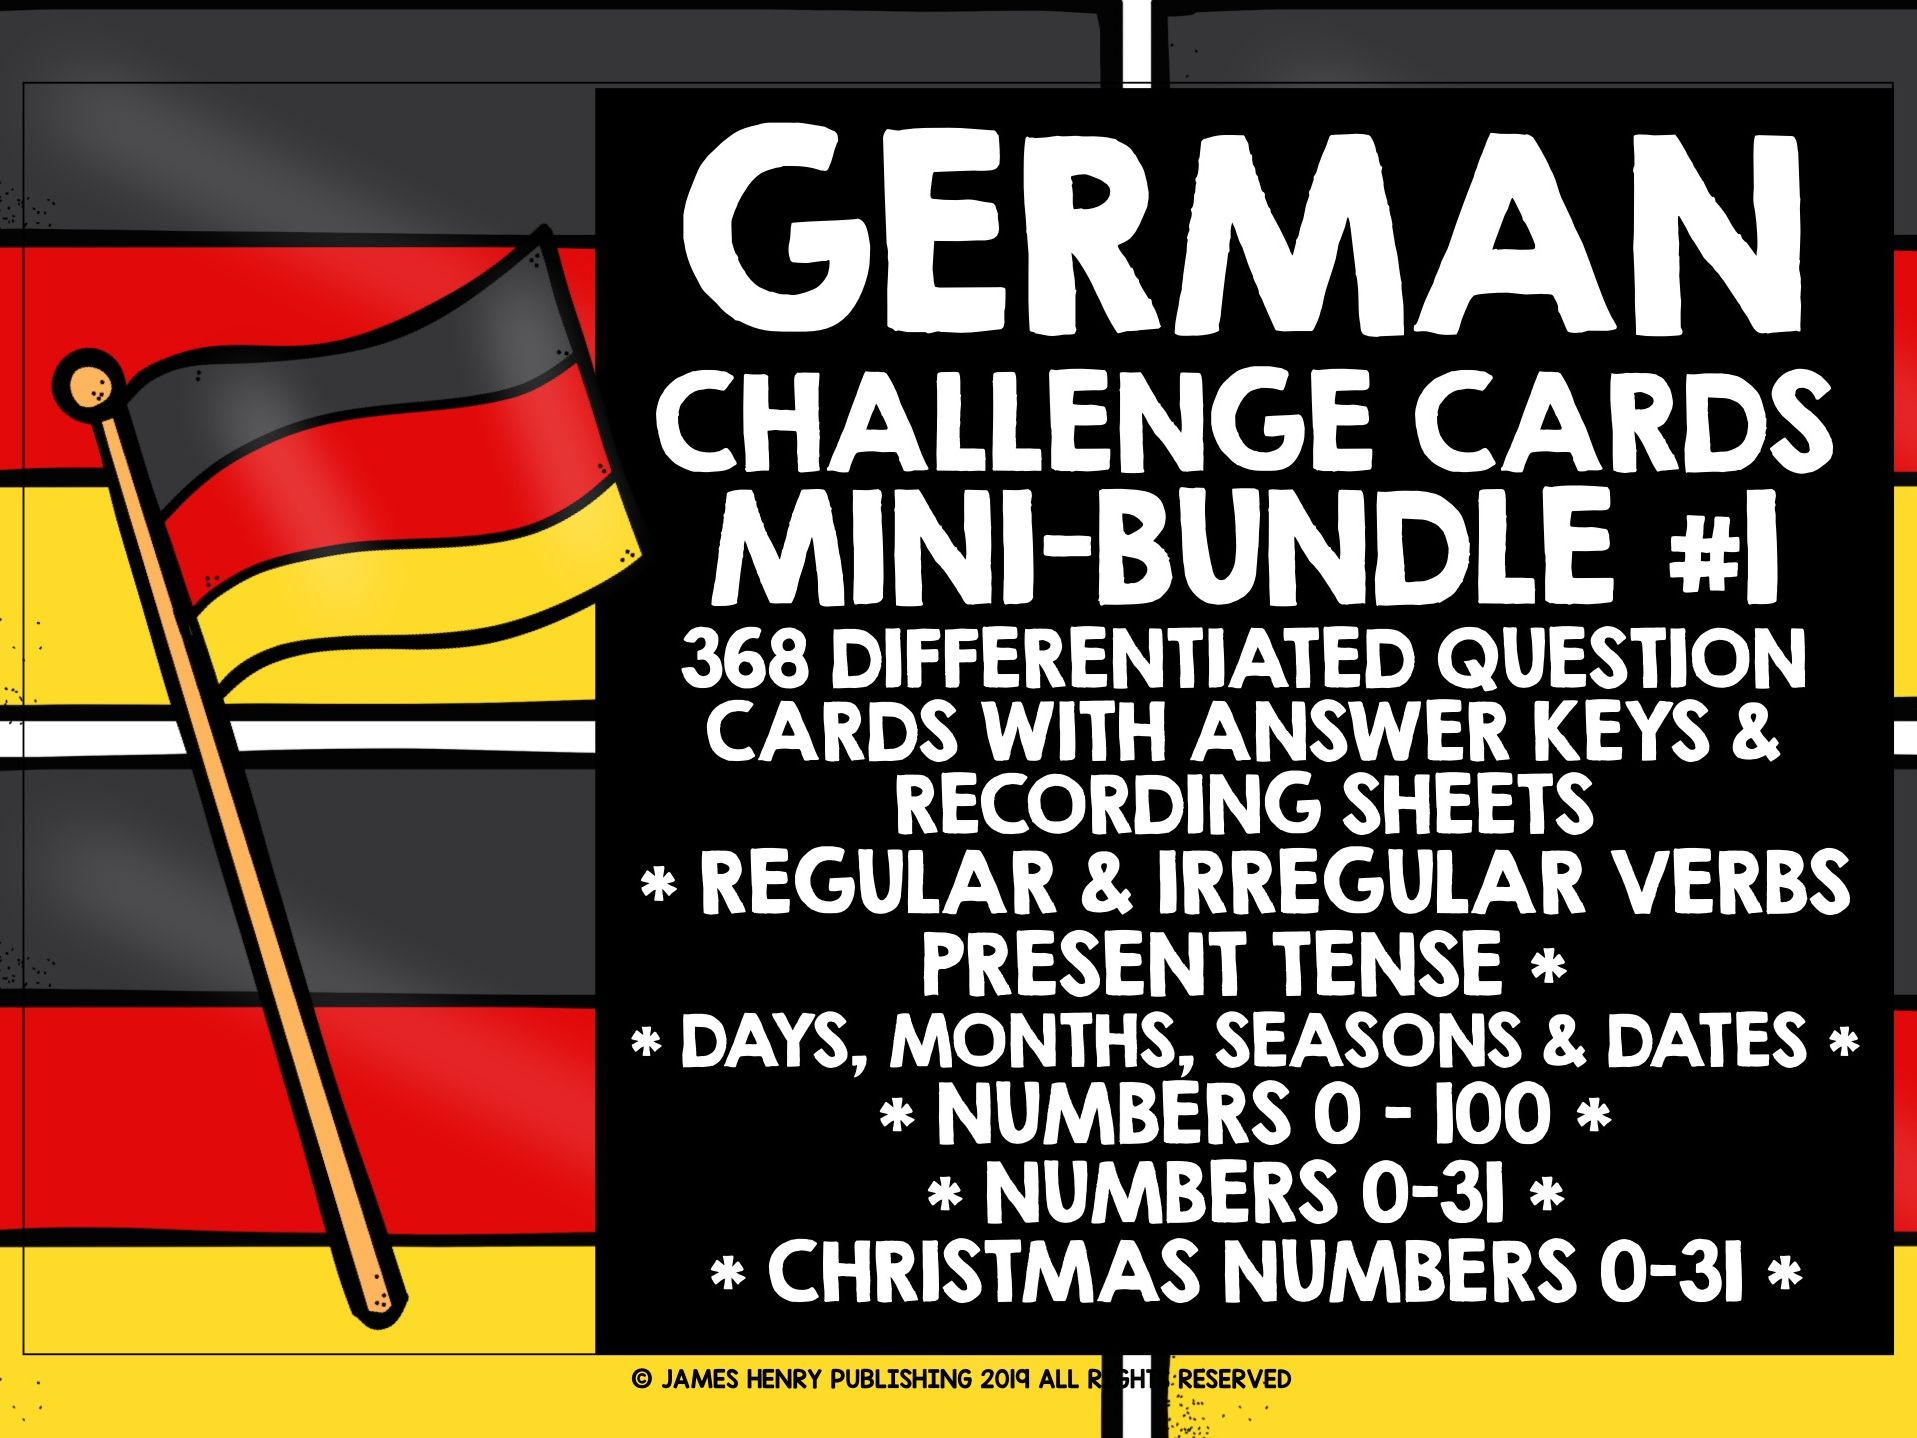 GERMAN CHALLENGE CARDS MINI-BUNDLE #1